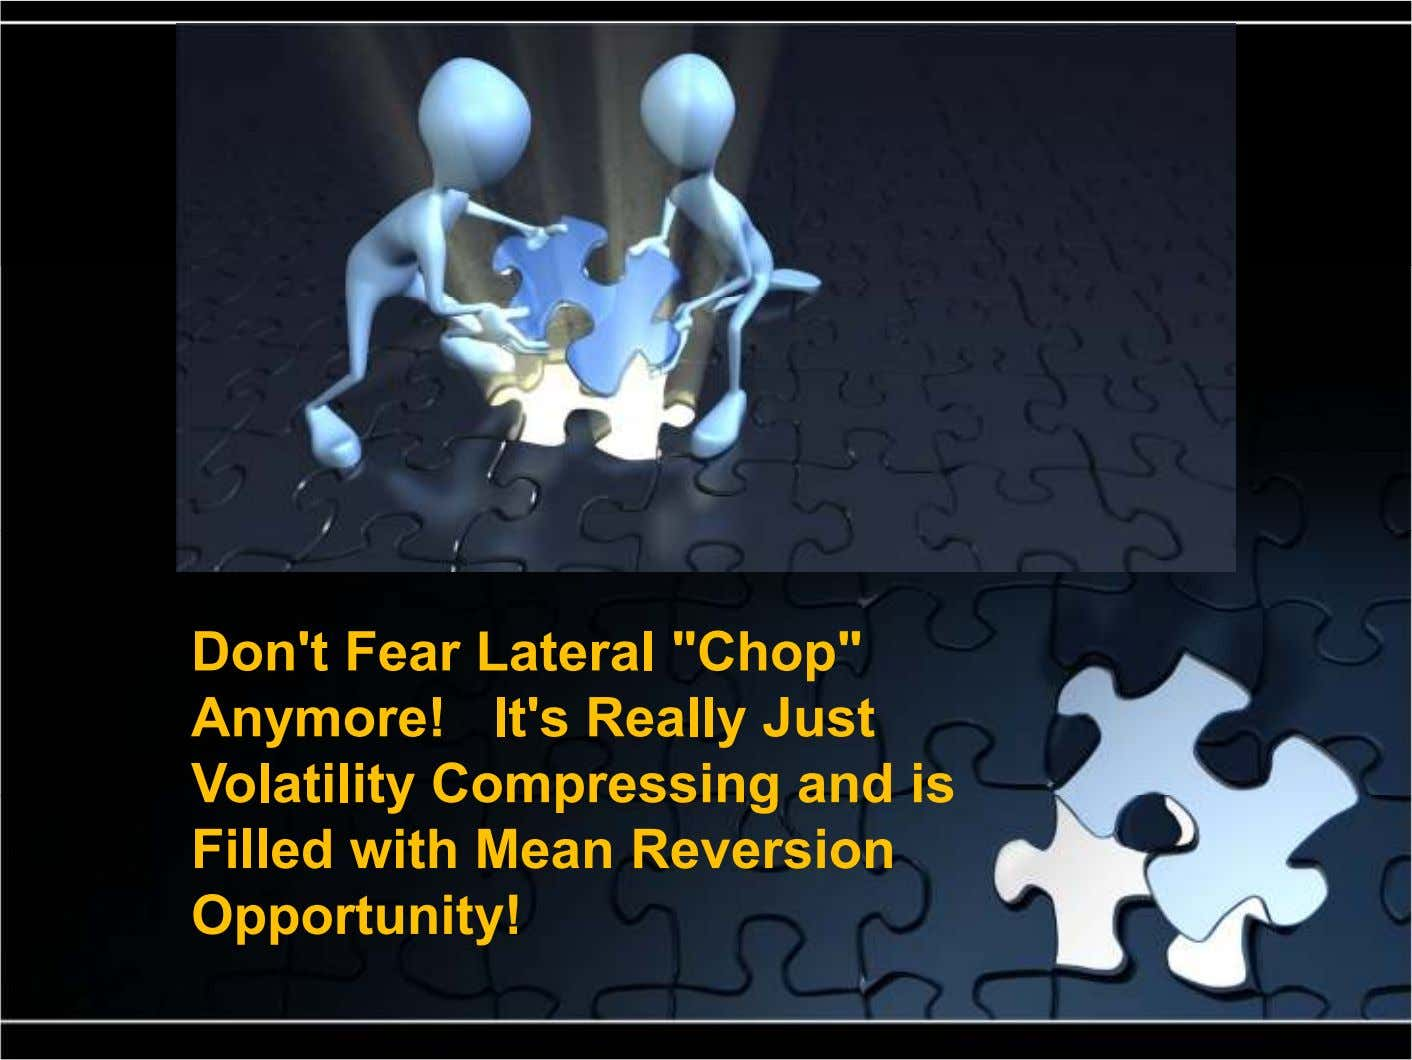 "Don't Fear Lateral ""Chop"" Anymore! It's Really Just Volatility Compressing and is Filled with Mean Reversion"